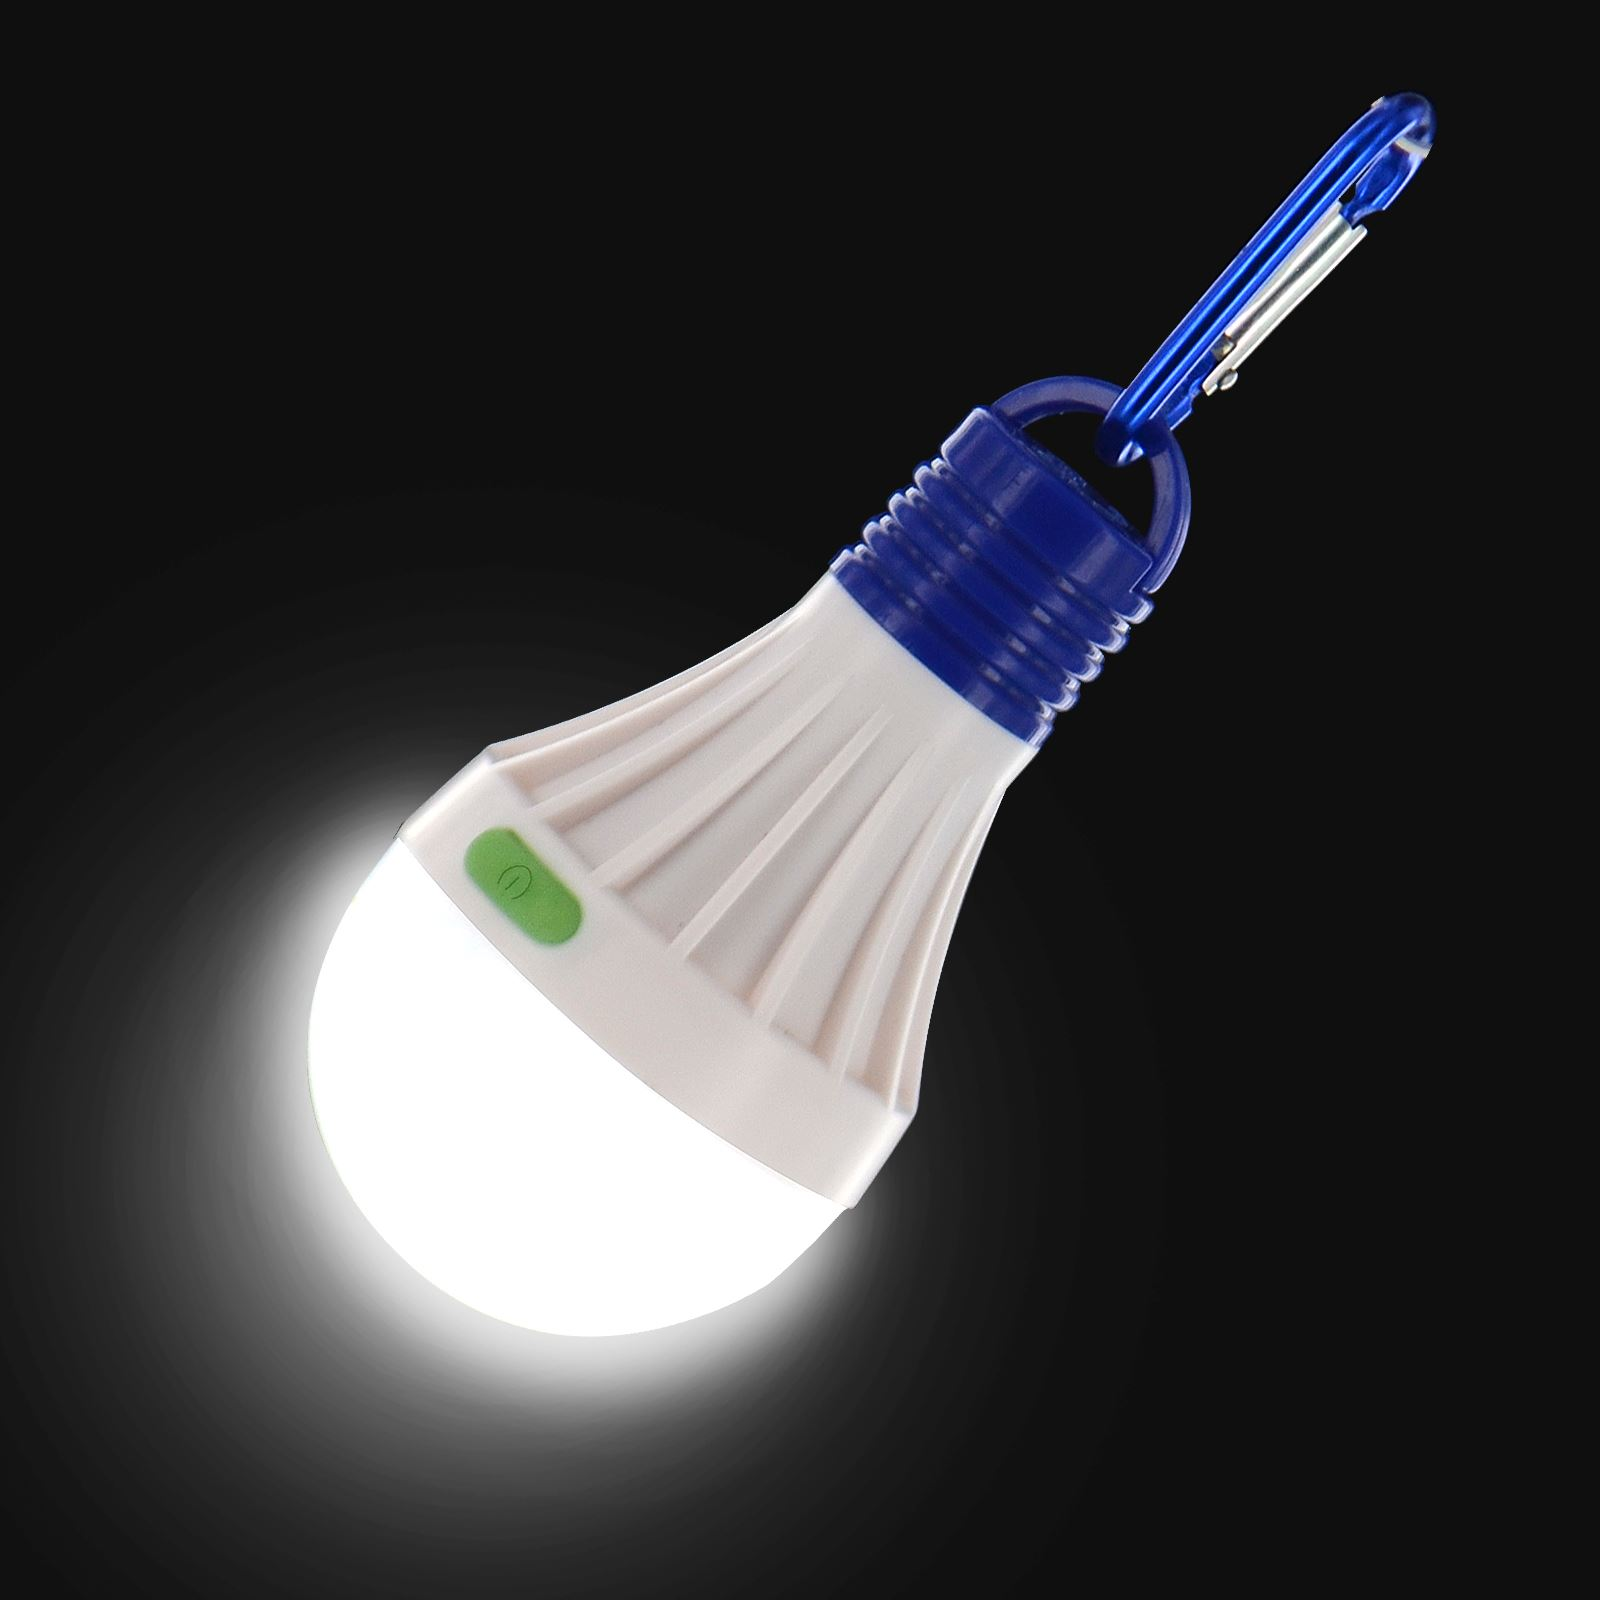 portable led outdoor camping tent light bulb hanging fishing lantern lamp torch ebay. Black Bedroom Furniture Sets. Home Design Ideas